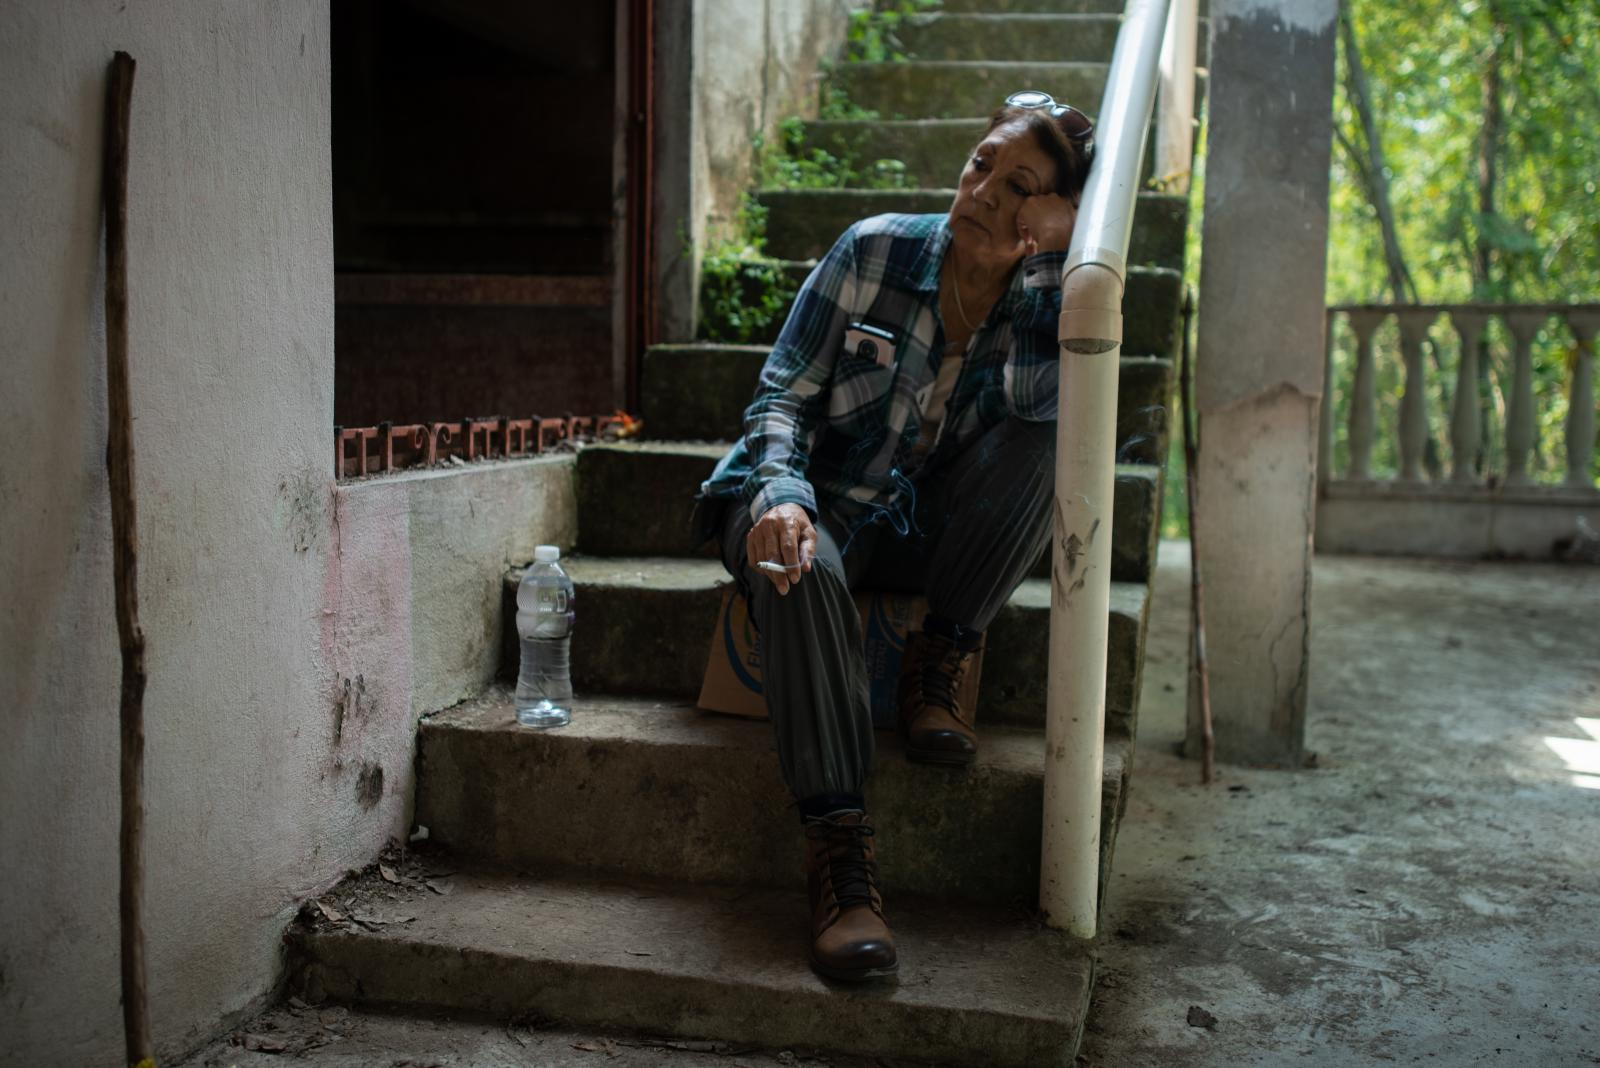 "Teresa Figueroa, 66, seeker from Baja California, Mexico, rests inside the house located in the ranch ""La Gallera"" where human remains have been located during the fifth National Missing Persons Search Brigade in Tihuatlán, Veracruz, Mexico, on February 20, 2020. Victoria Razo for NPR"